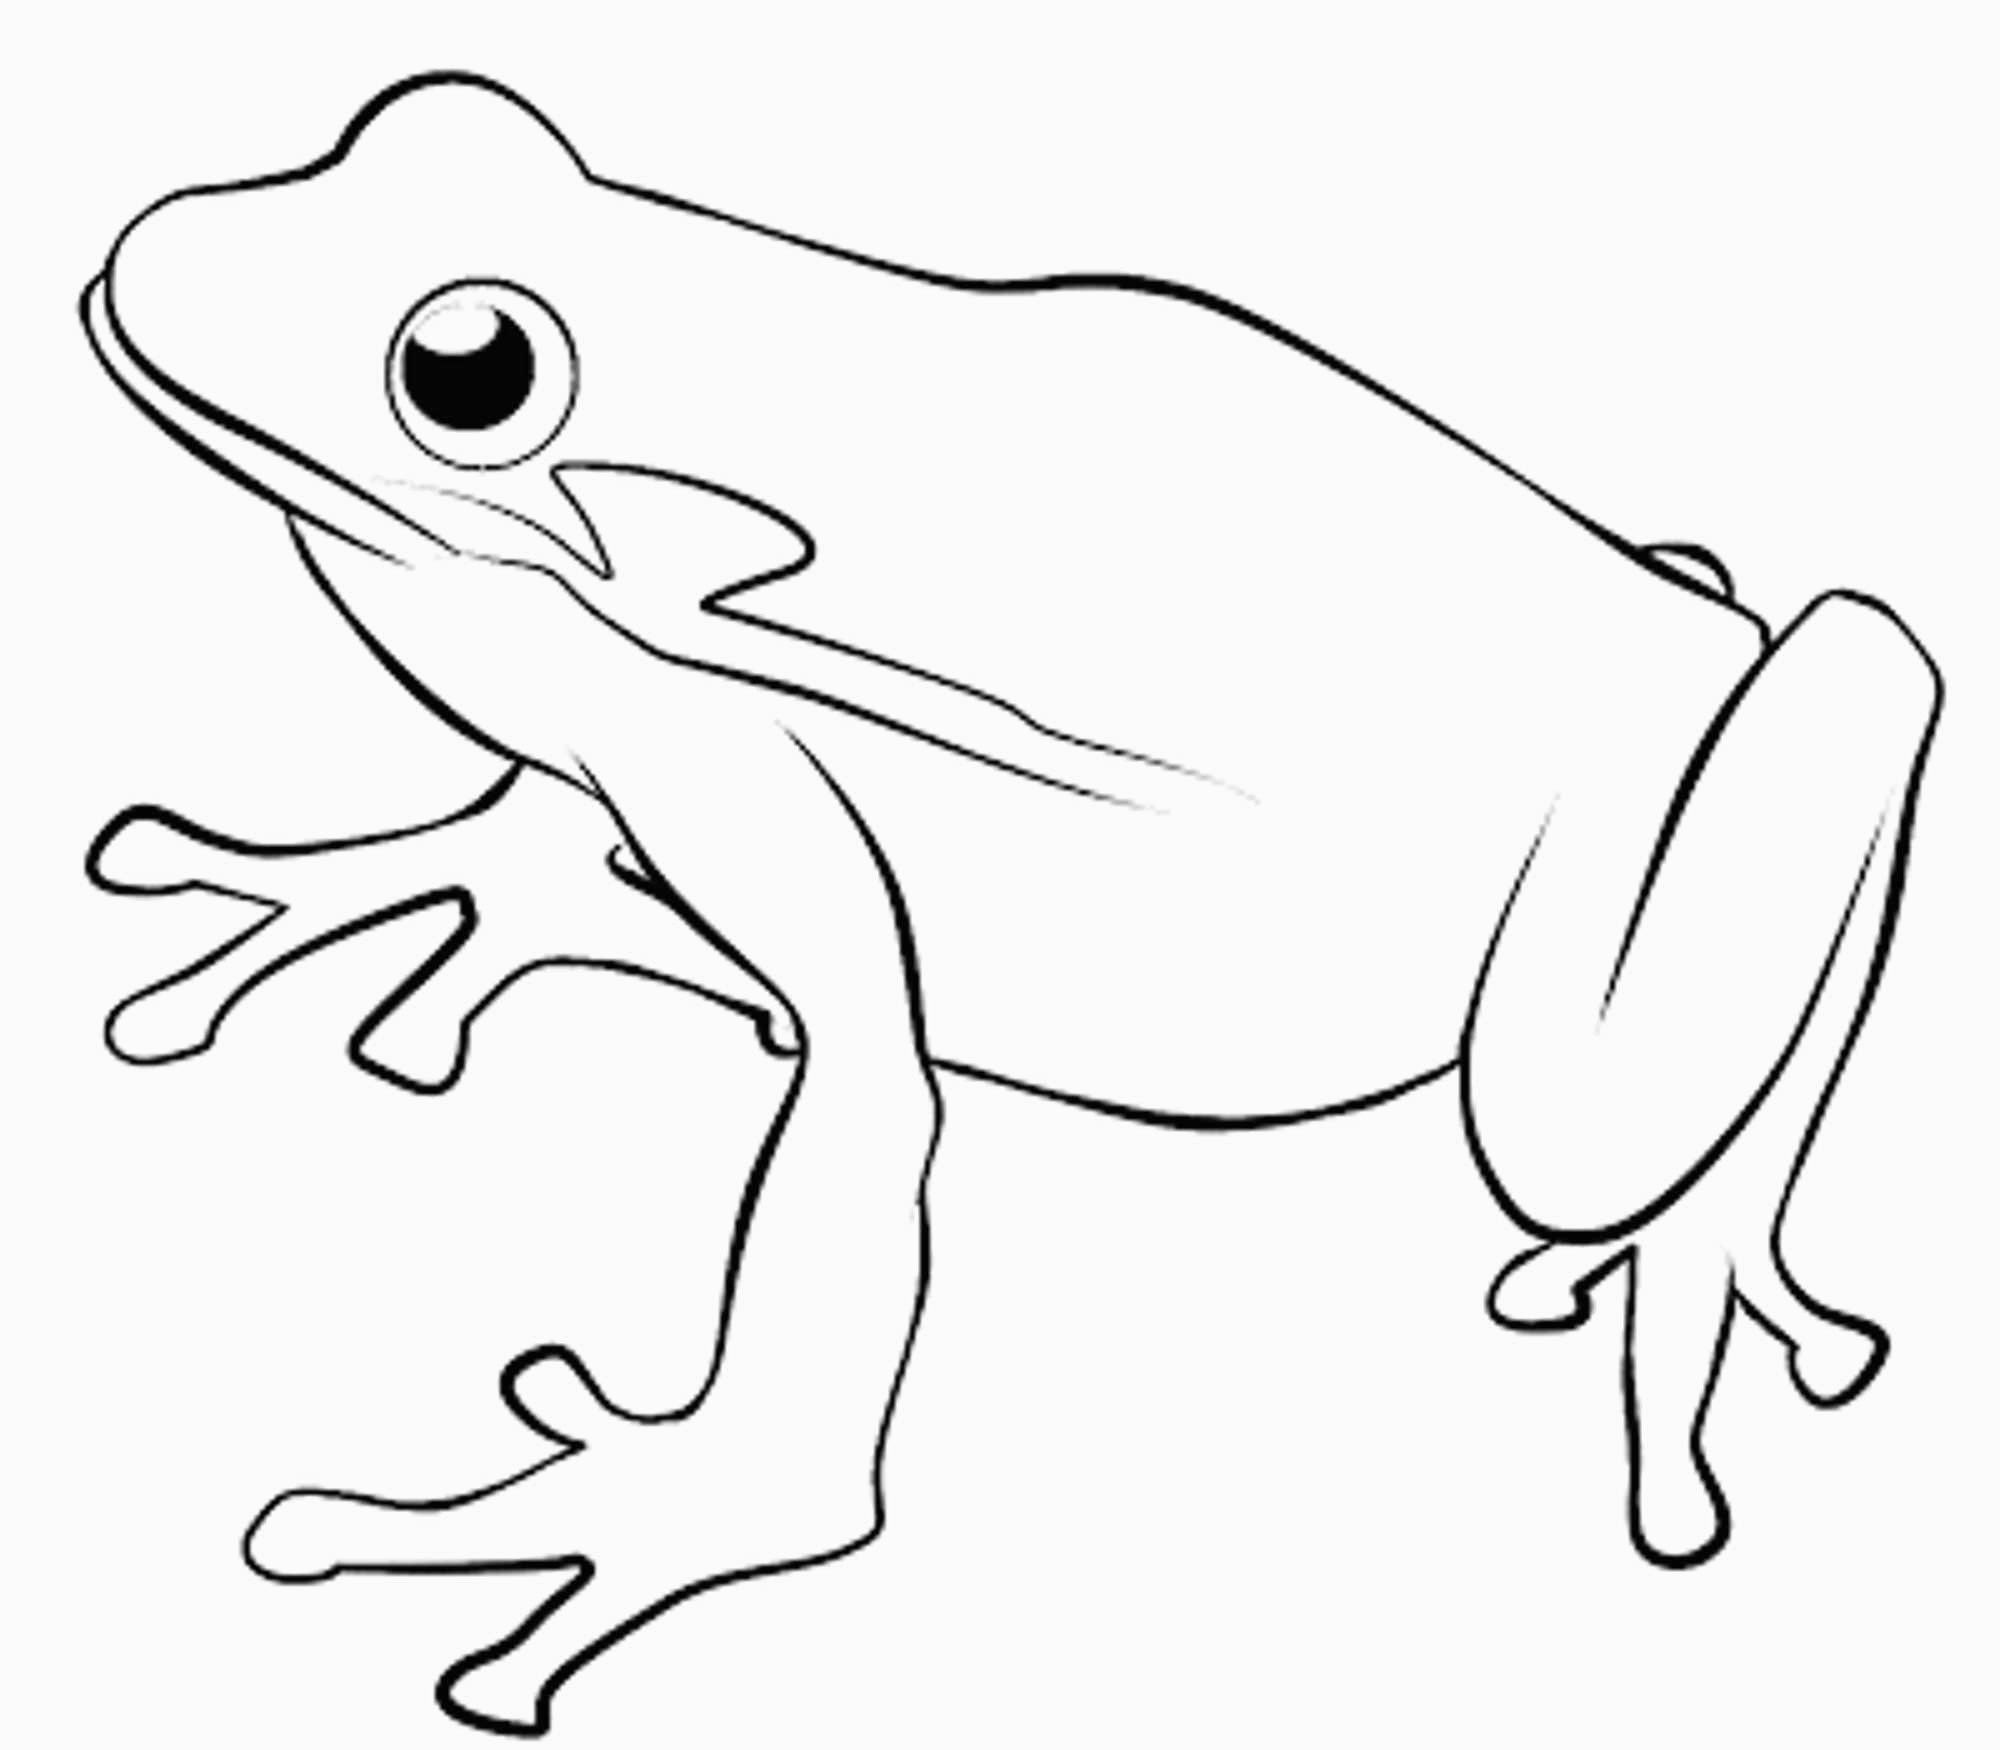 Frogs to color for kids - Frogs Kids Coloring Pages | 1750x2000